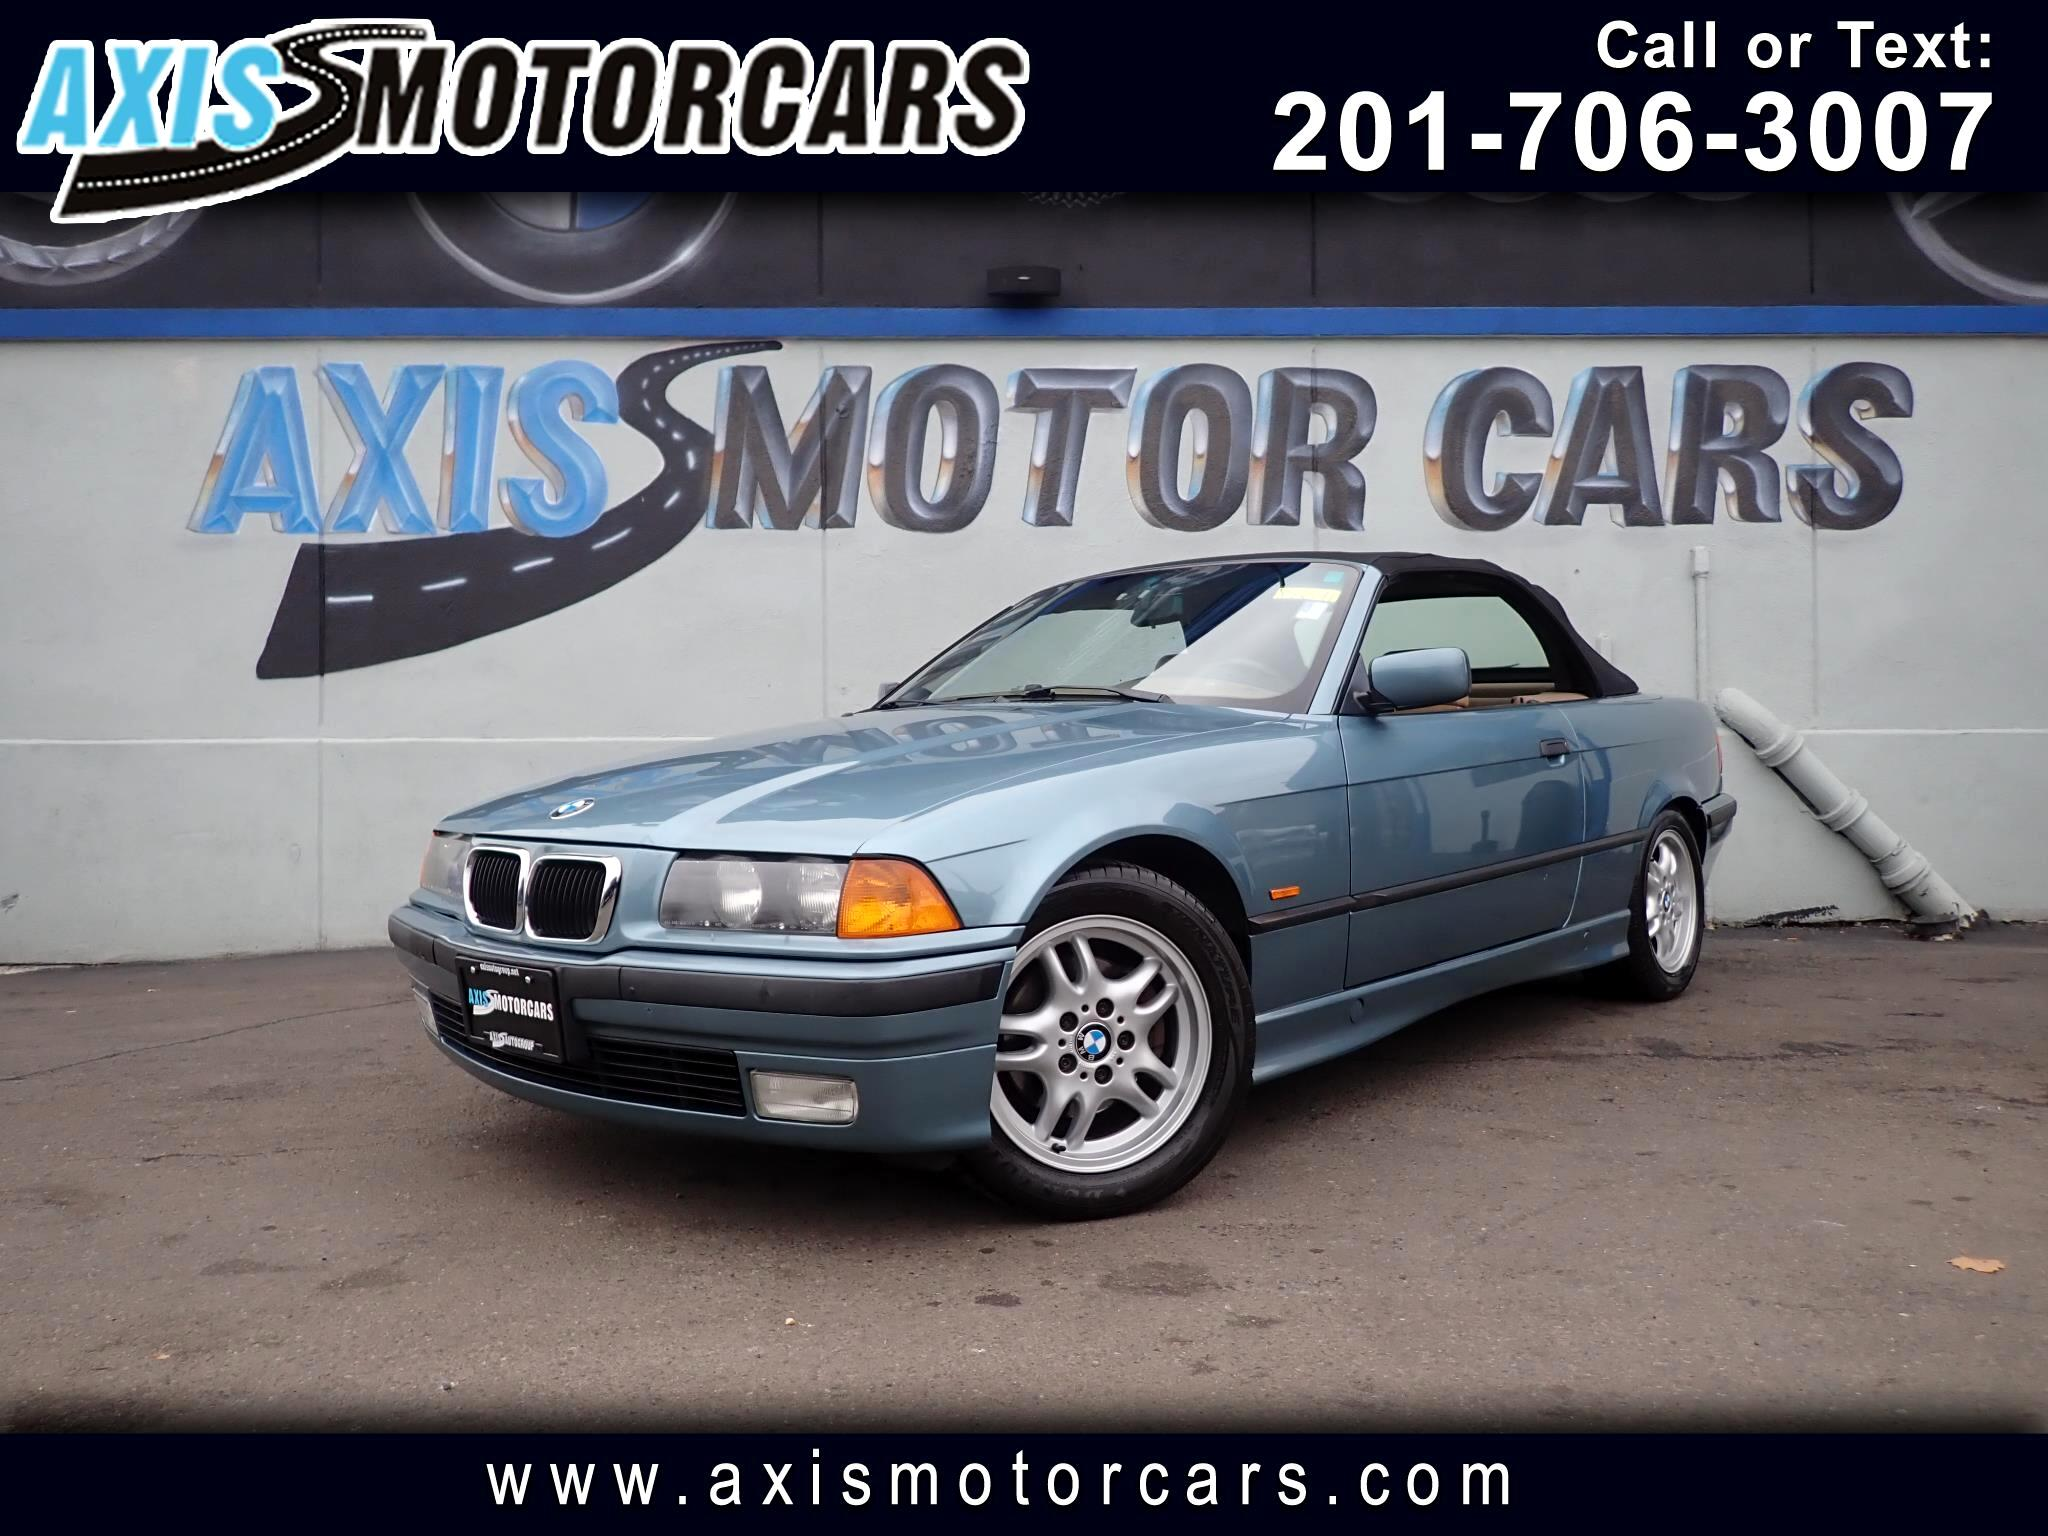 1997 BMW 328i ICA 2dr Convertible Auto